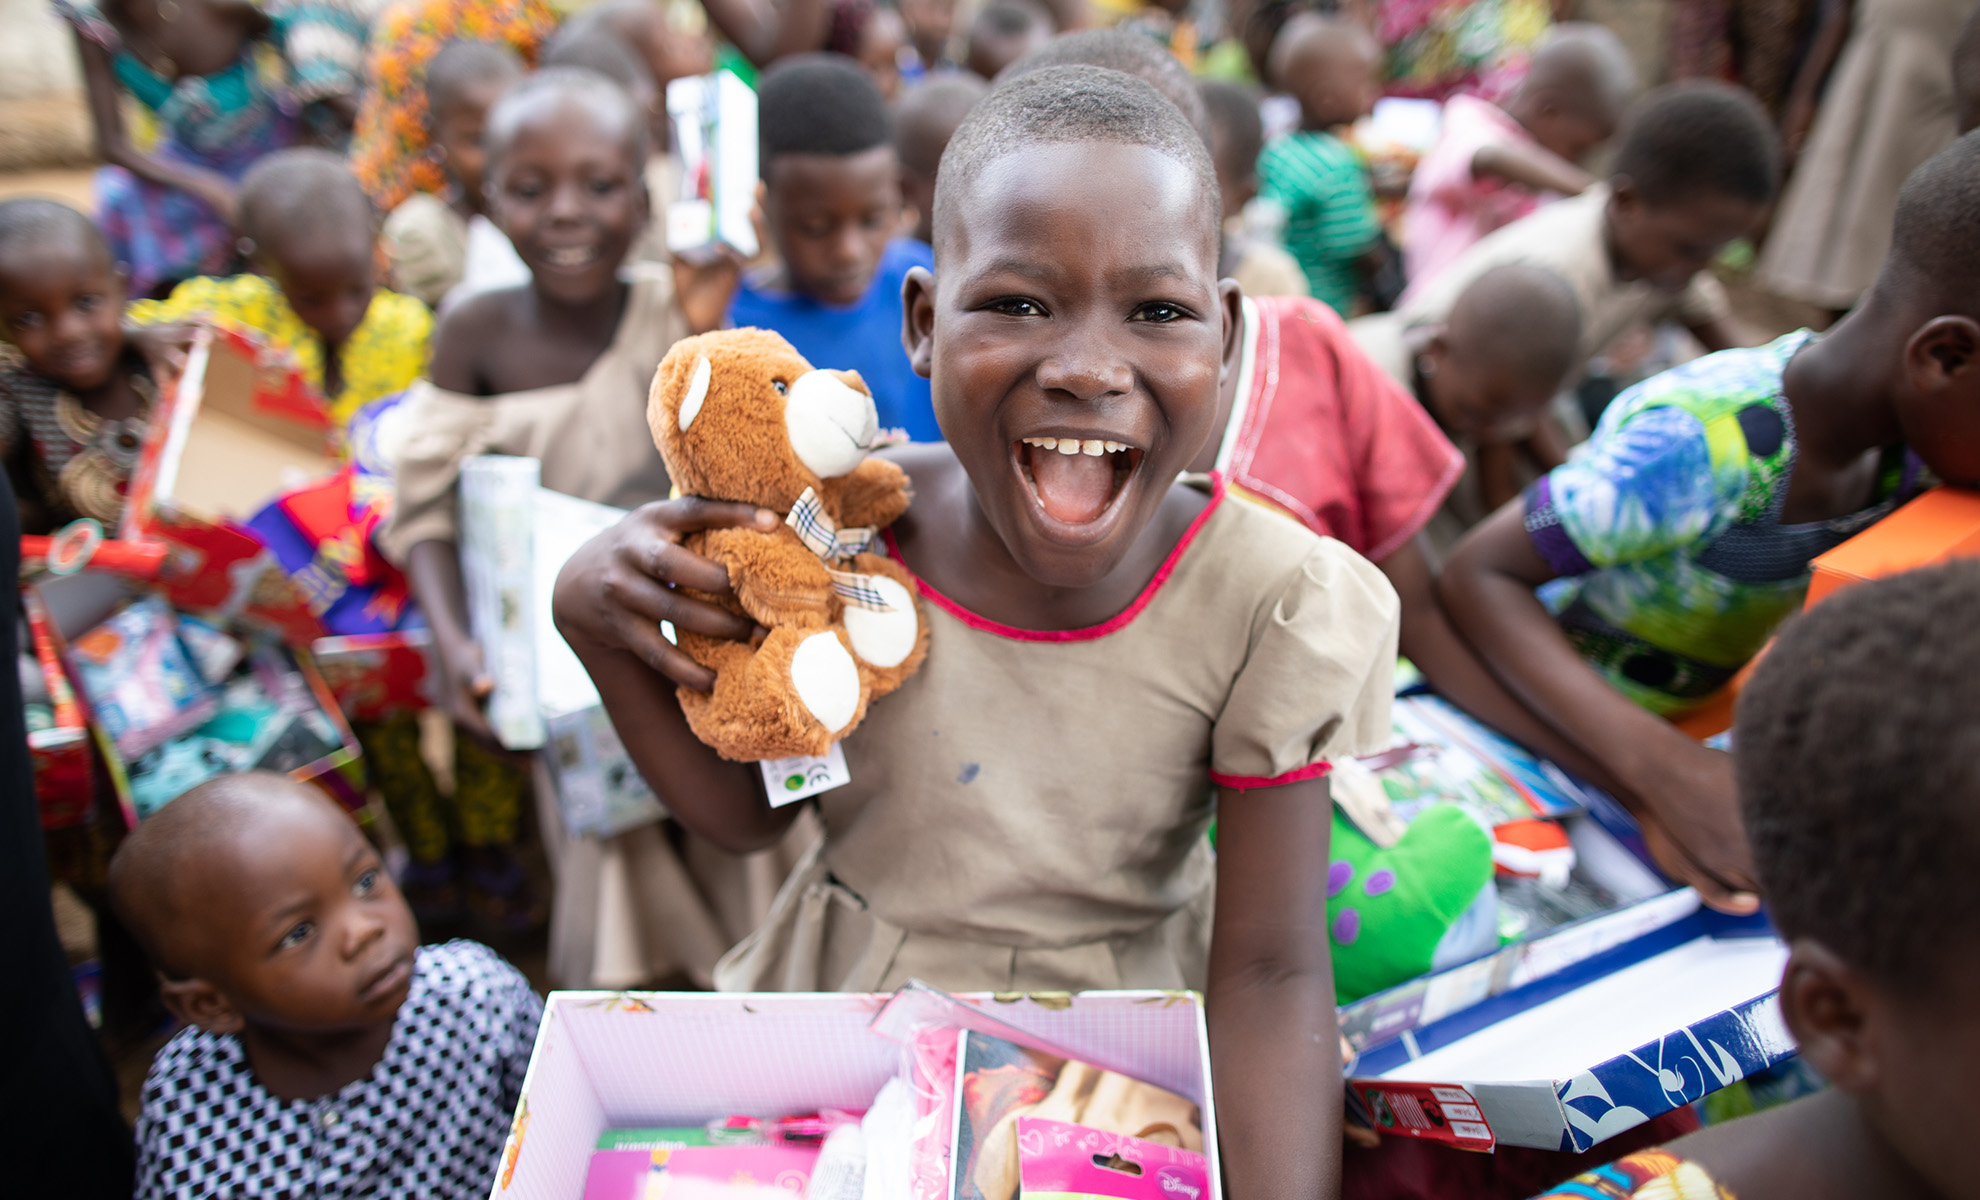 Laughing girl holding teddy and shoebox